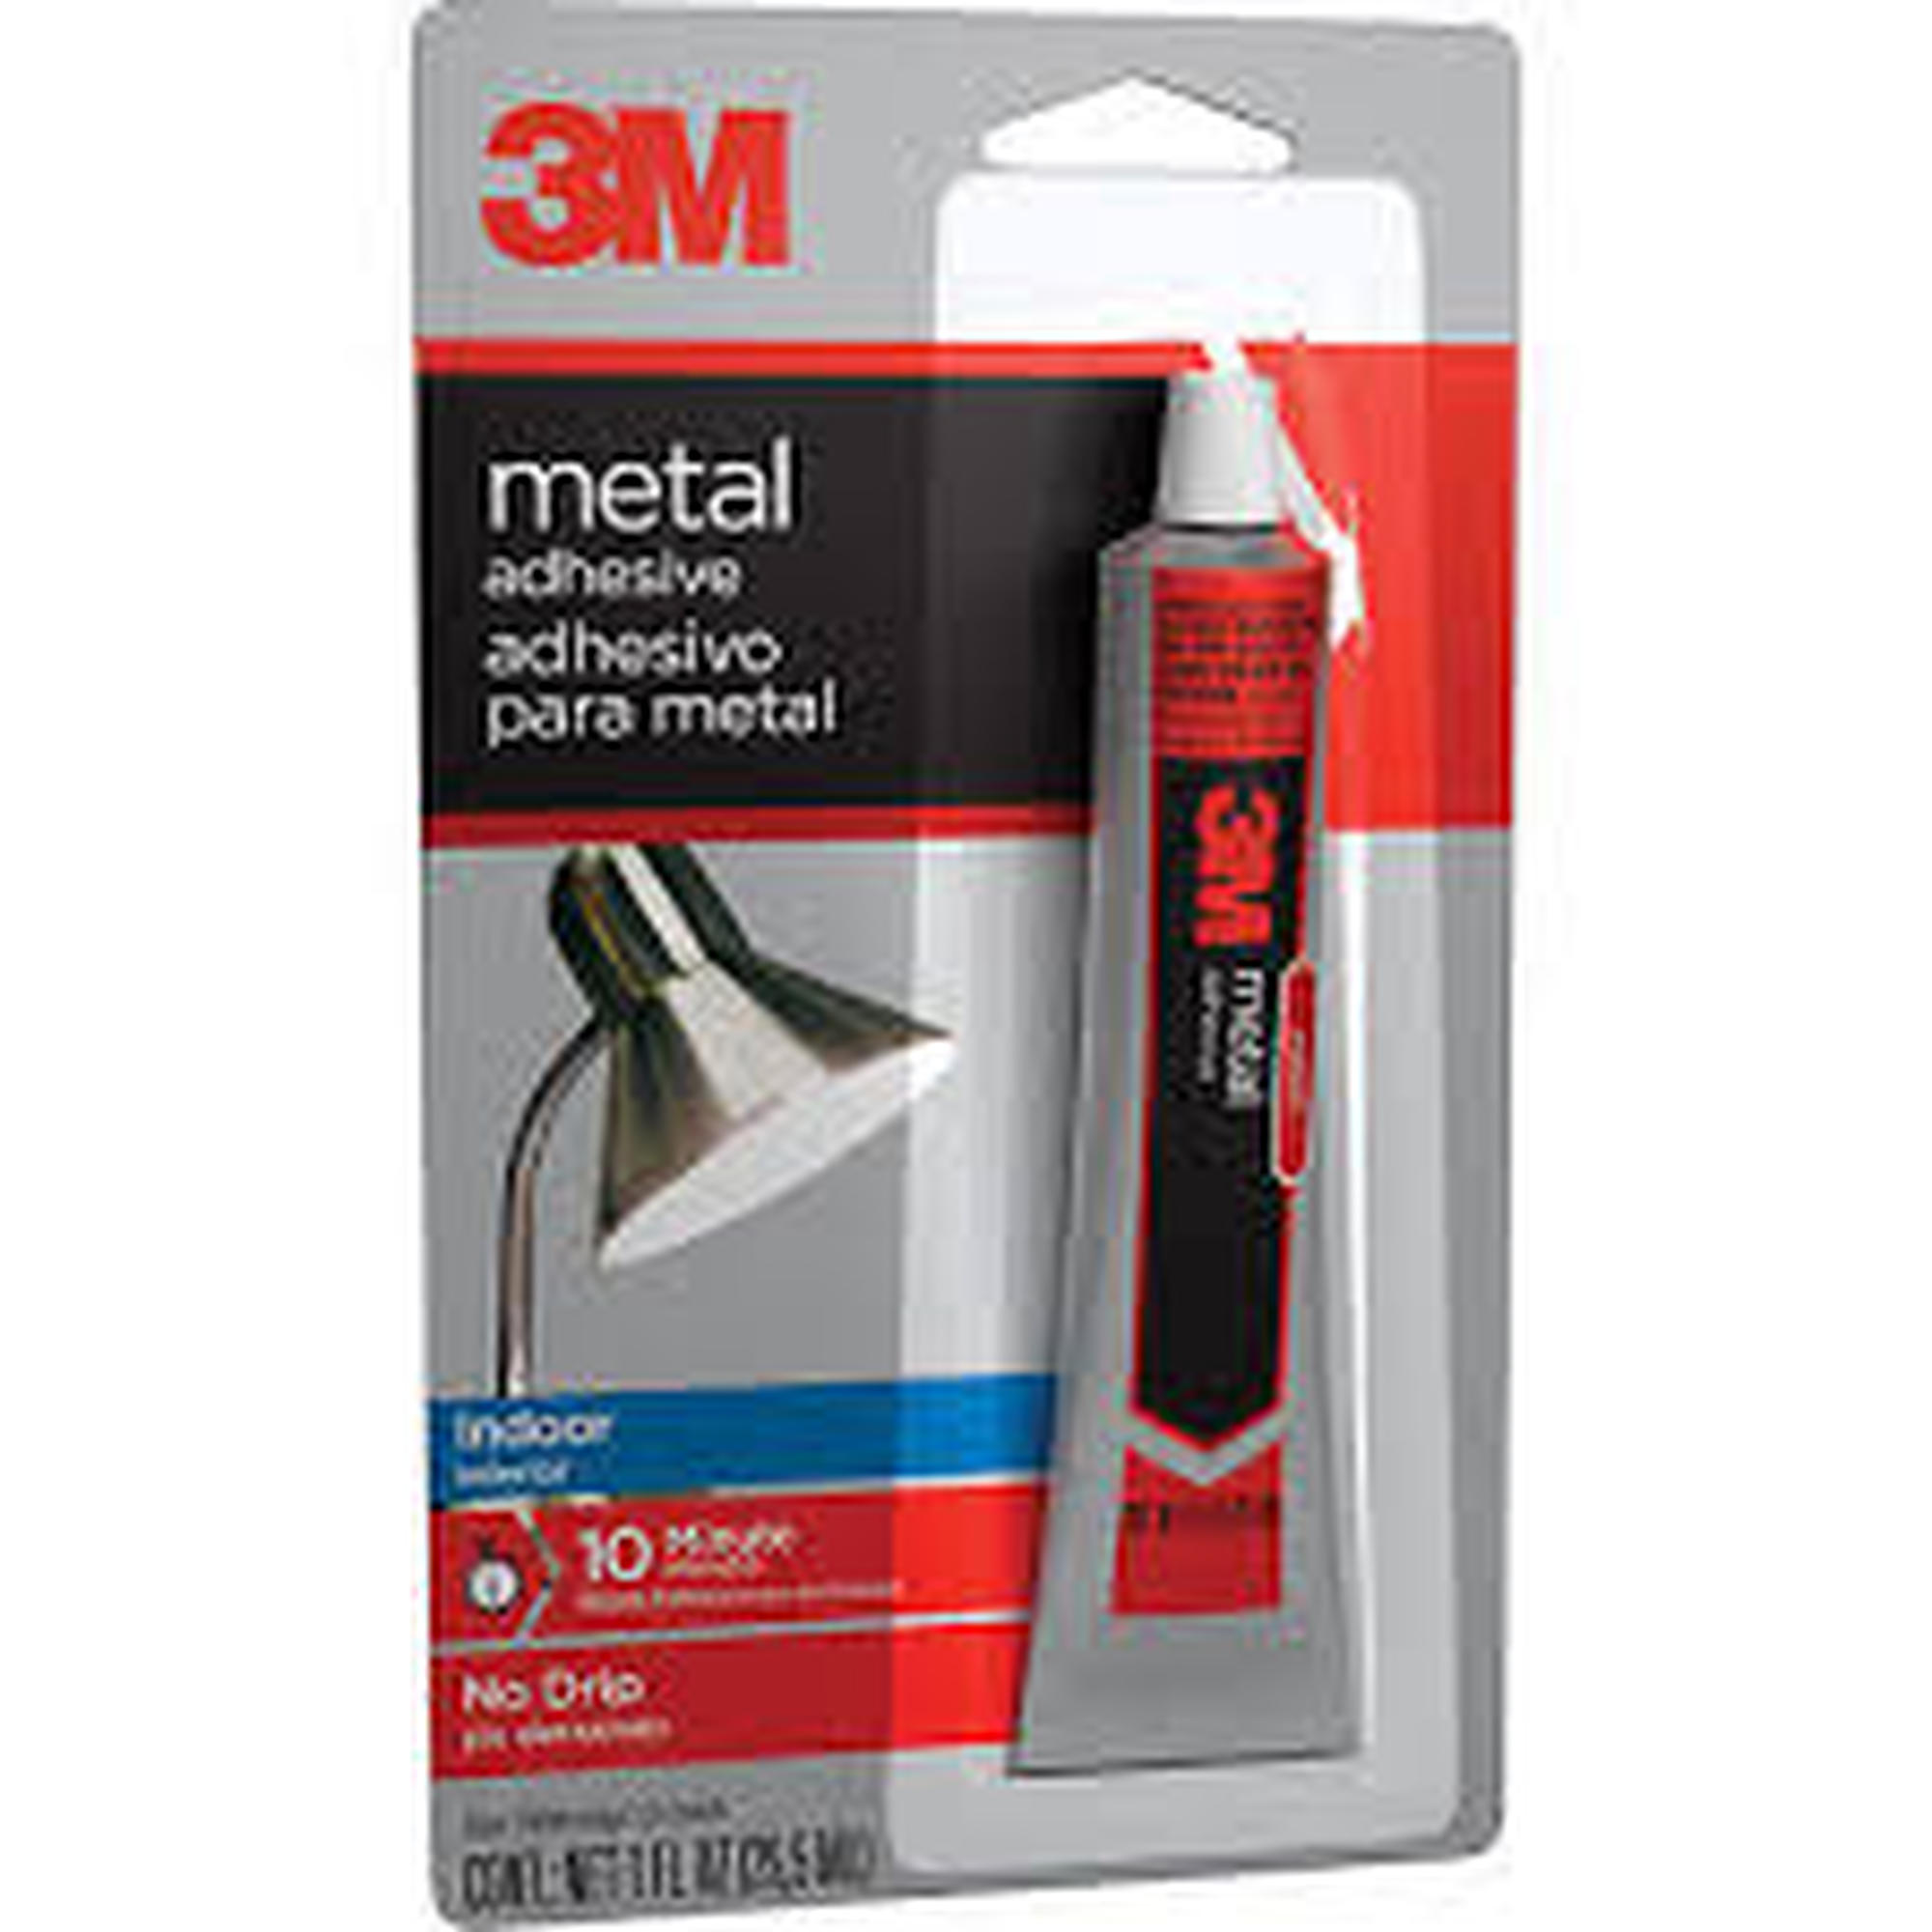 3m Qatar Local Businesses Product By Savy Trading W L L